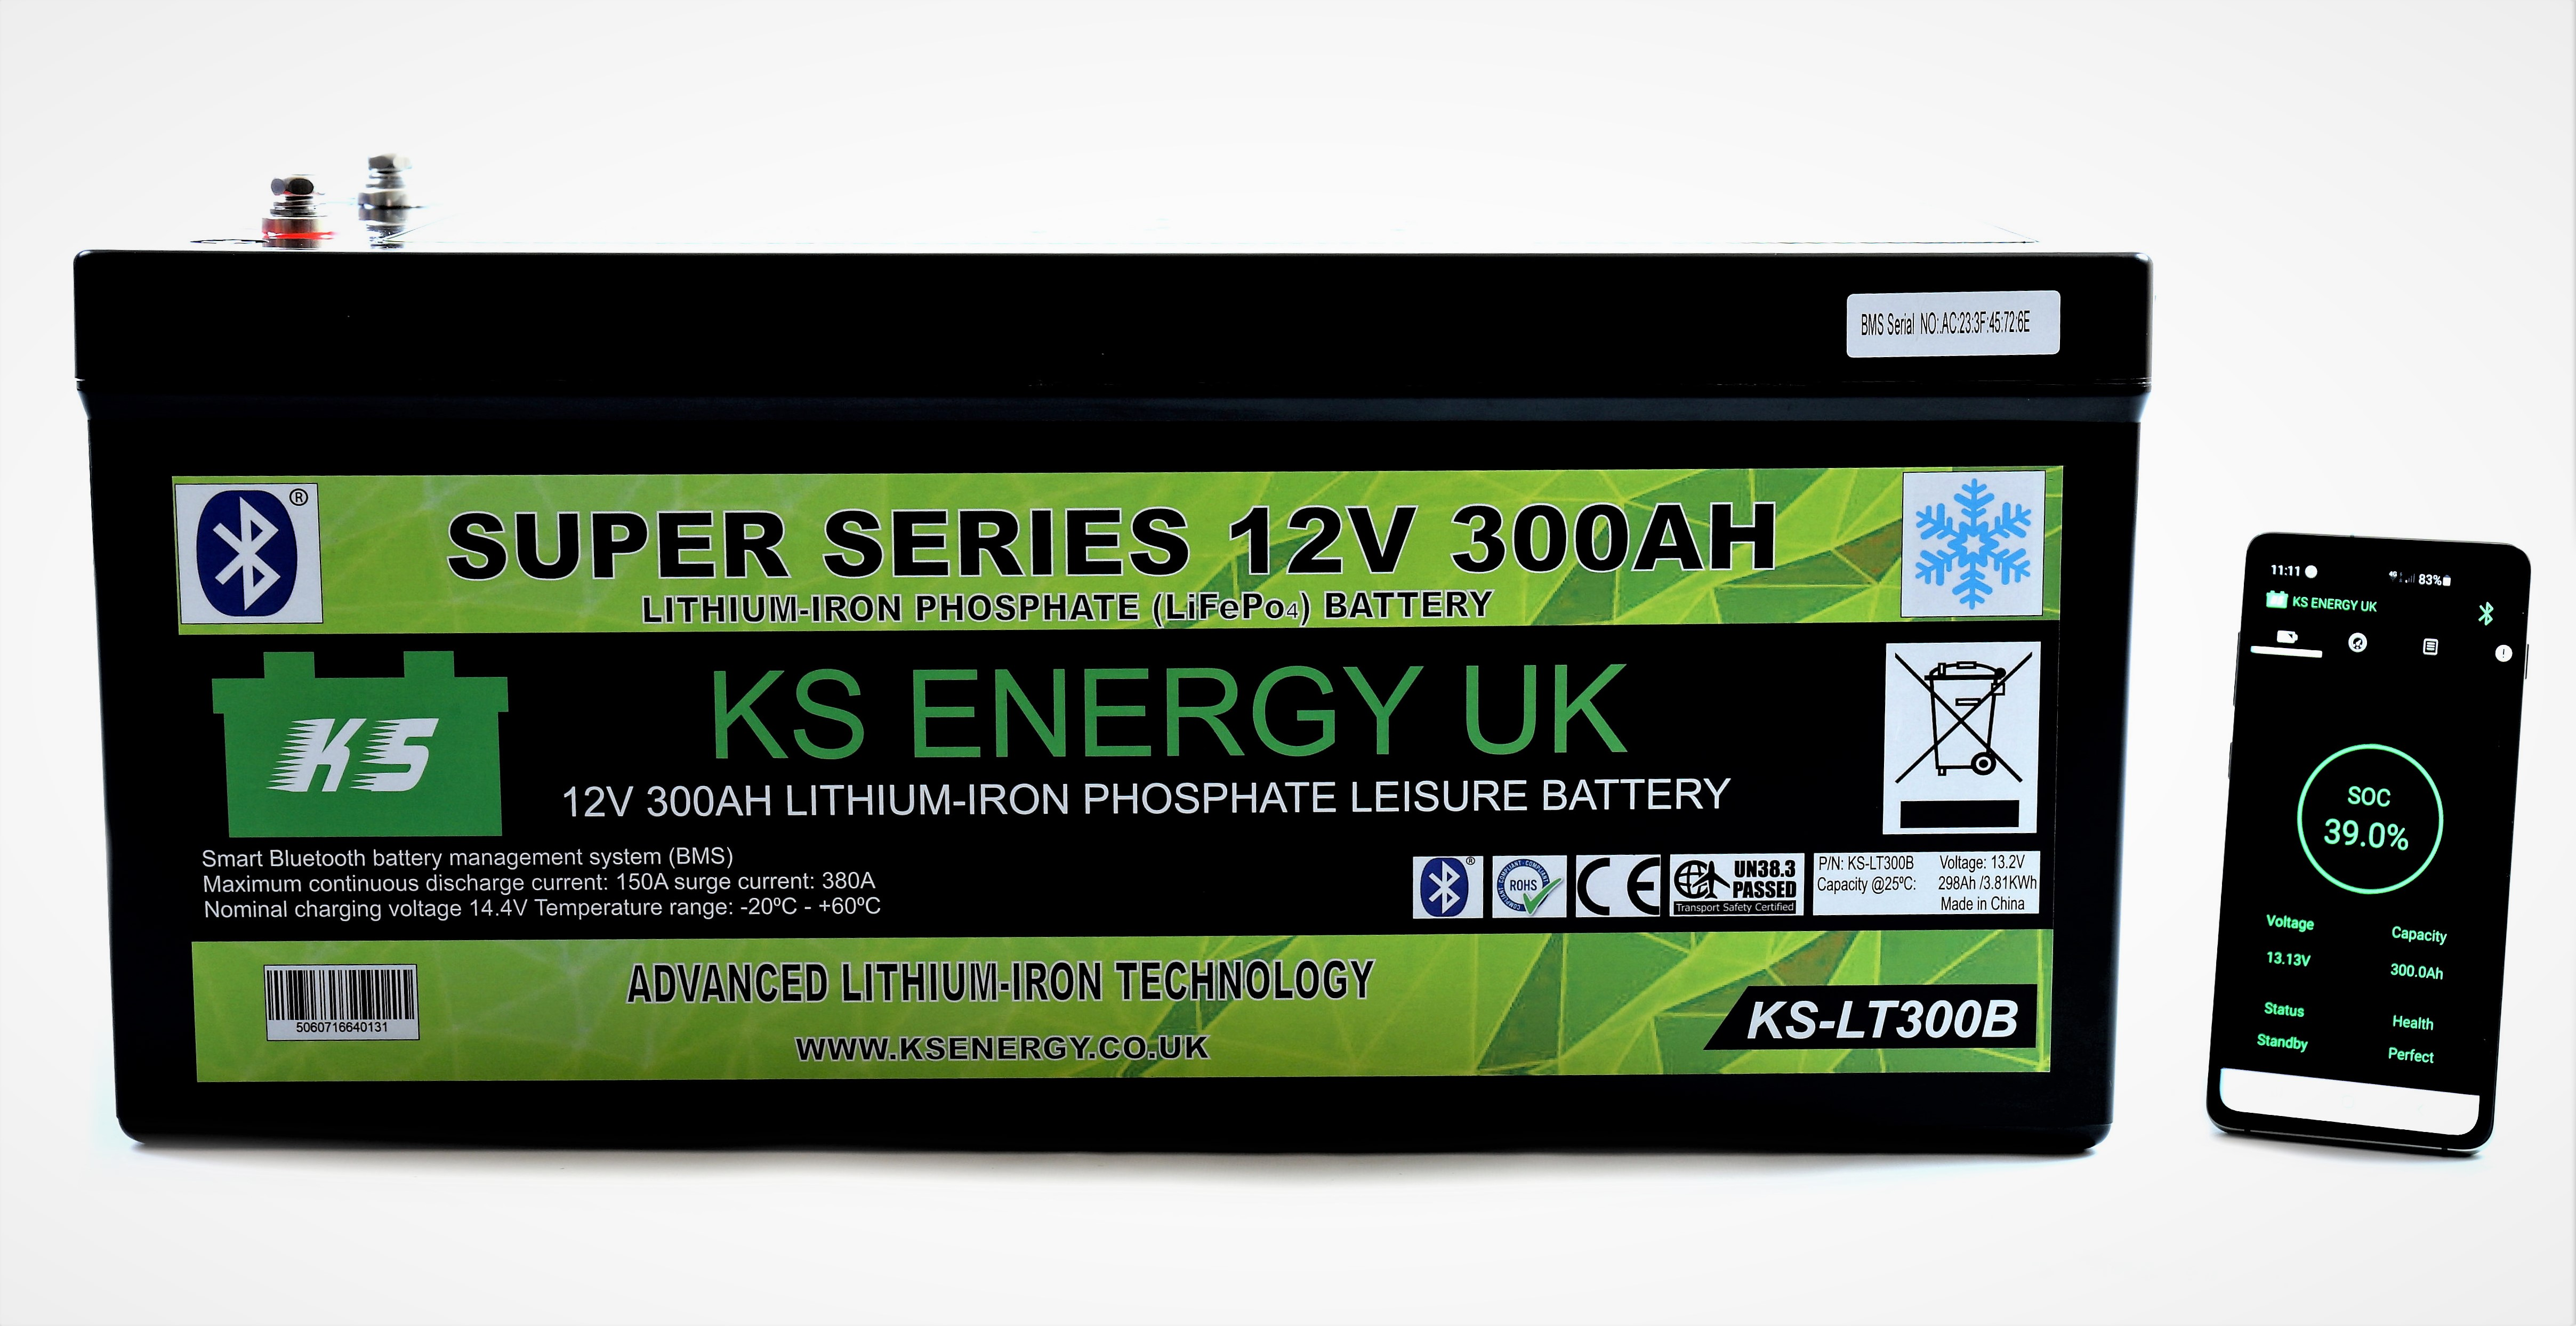 6): KS-LT300B 12v 300AH Bluetooth High Power LiFePo4 lithium leisure battery